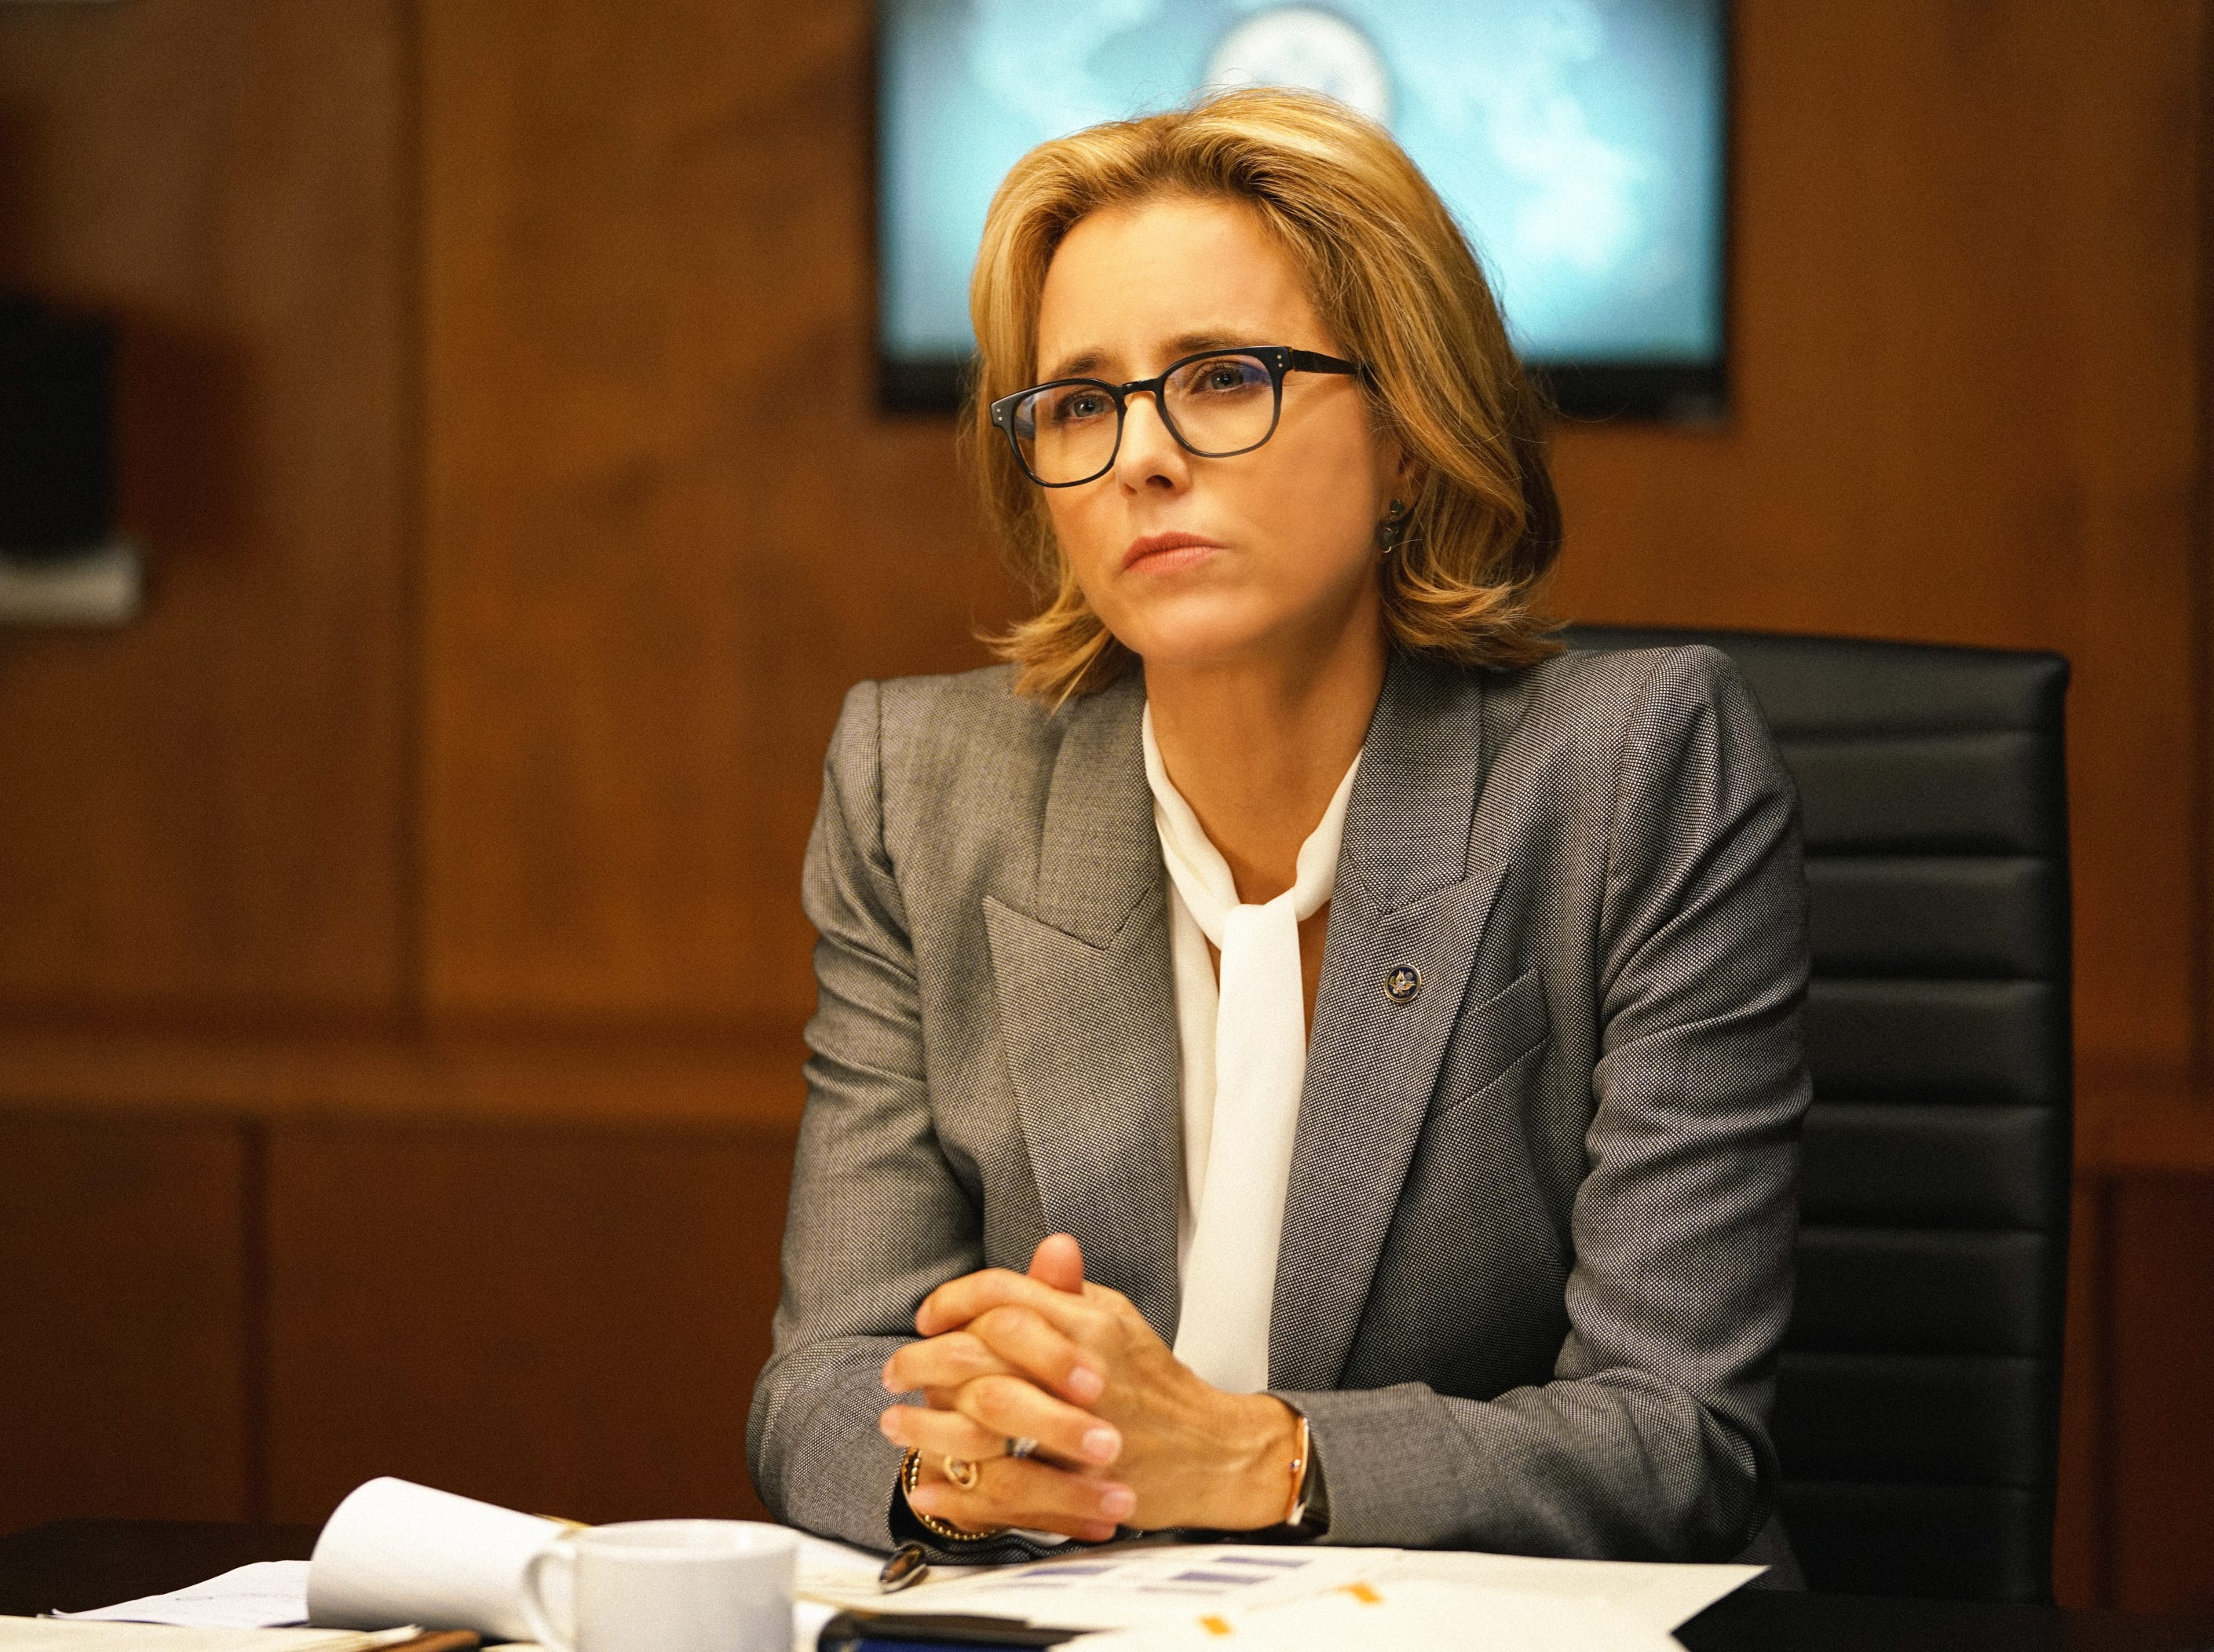 """Madam Secretary"" (CBS, 2014-present): Tea Leoni is Elizabeth Adams McCord, the United States Secretary of State who  advises the President on international issues."